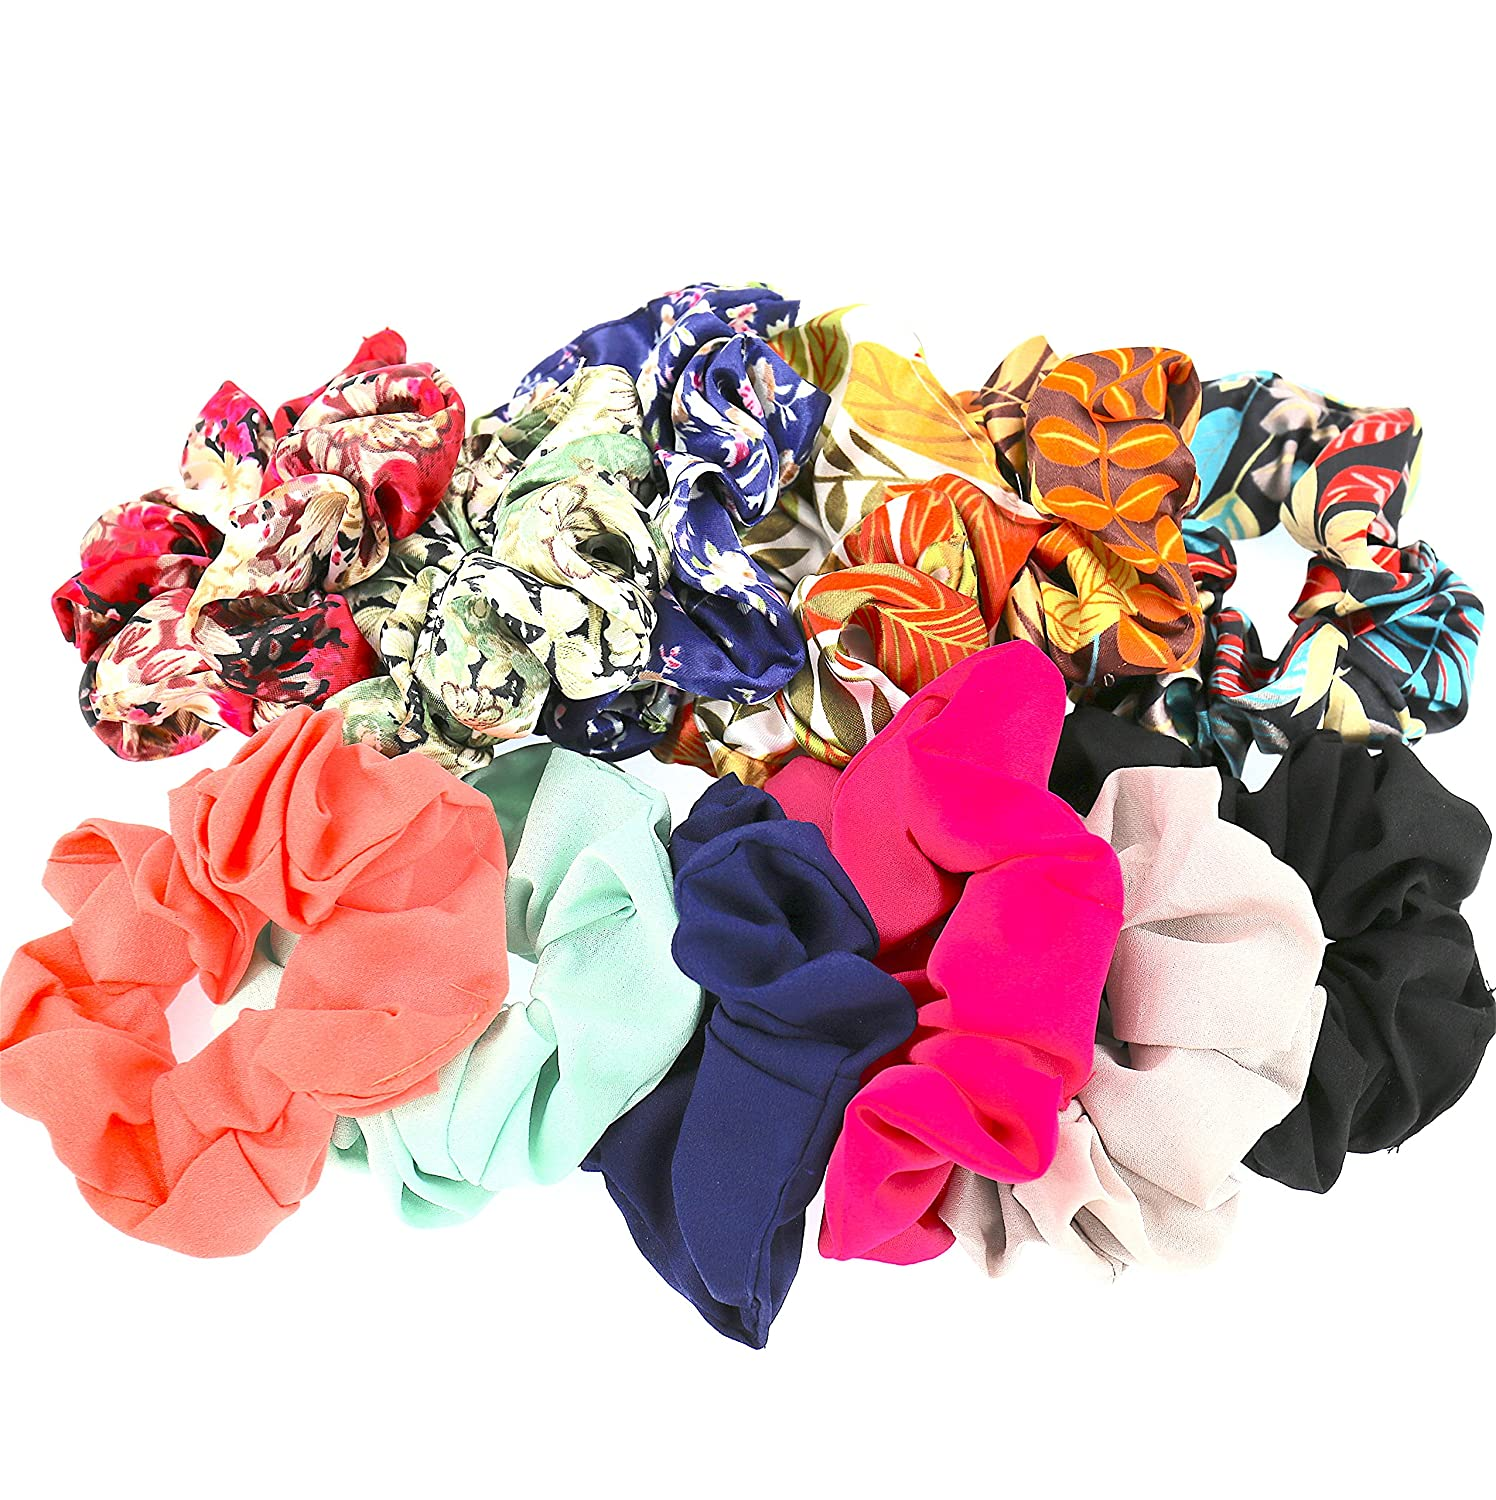 Set of 12 Women Hair Accessories Girls Multicolored Pattern Scrunchies for Hair Comelyjewel HA260400A-SETOF12-A